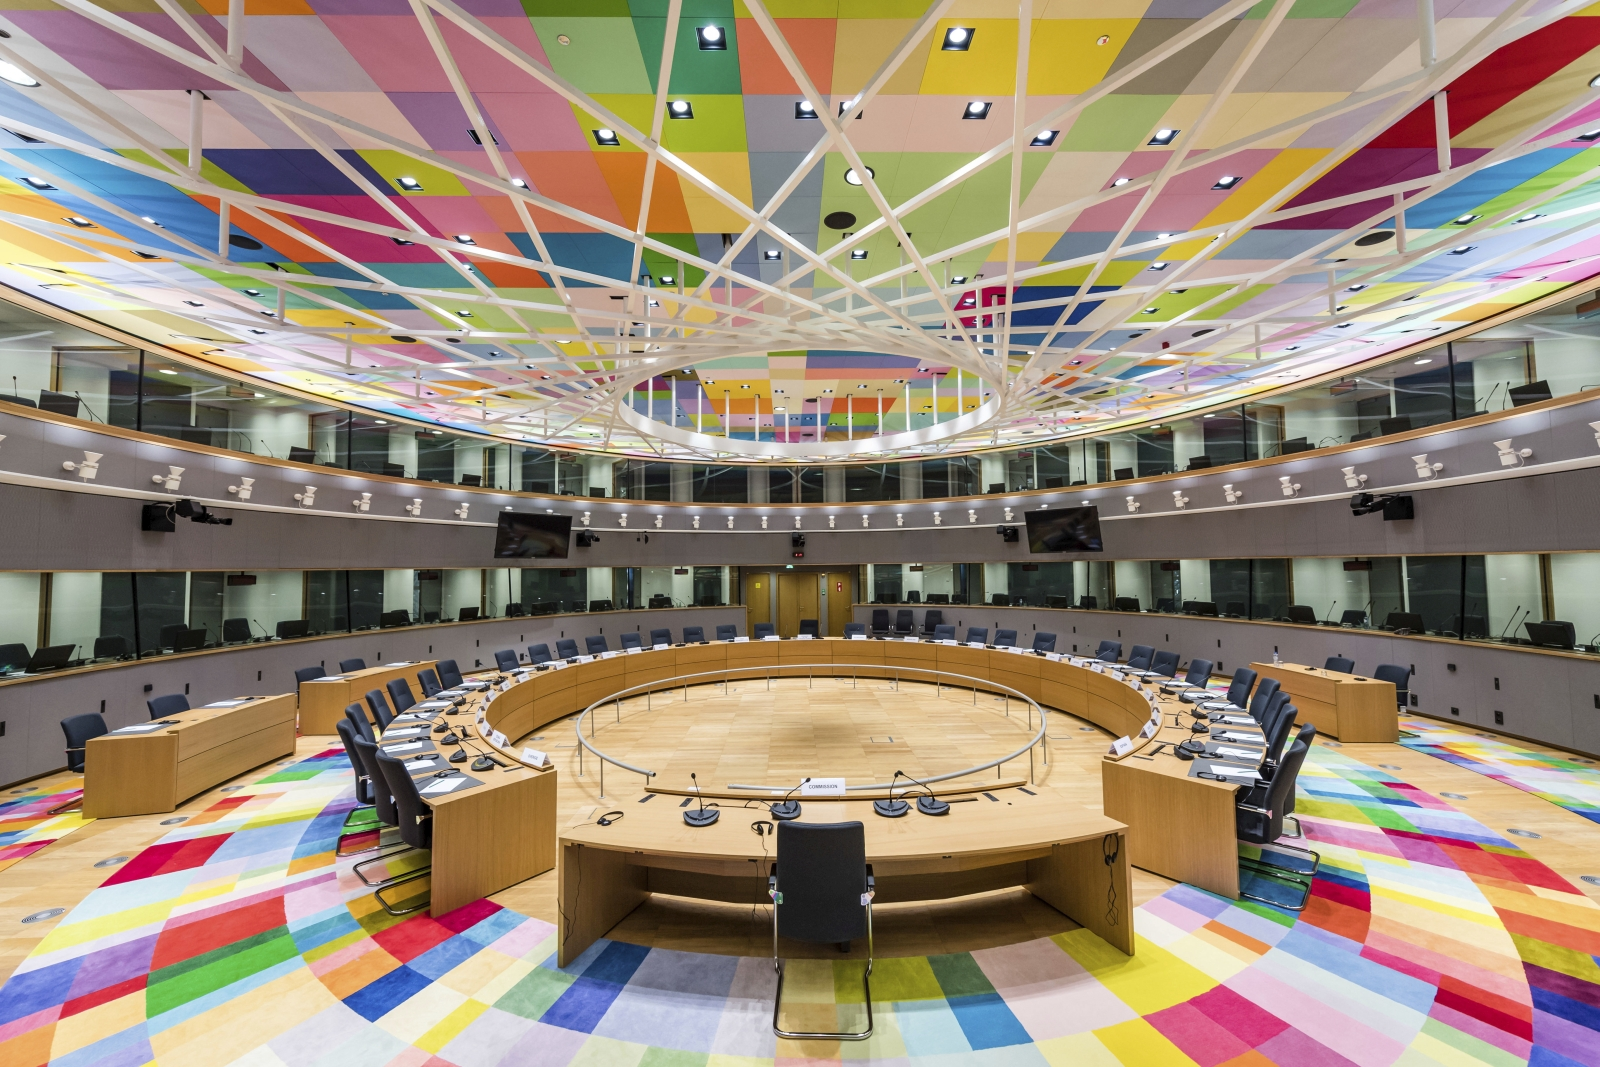 File - In this Dec. 9, 2017 file photo, colourful carpets decorate the main meeting room at the Europa building in Brussels. The European Union is making a belated change in venue of their two-day summit opening on Thursday, Oct. 18, 2017 because of toxic fumes in the recently opened Europa building. Instead of the egg-shaped building, the 28 EU leaders will now meet at the adjacent Justus Lipsius building, where they have a long tradition of hosting summits before the switch early this year. (AP Photo/Geert Vanden Wijngaert, File)